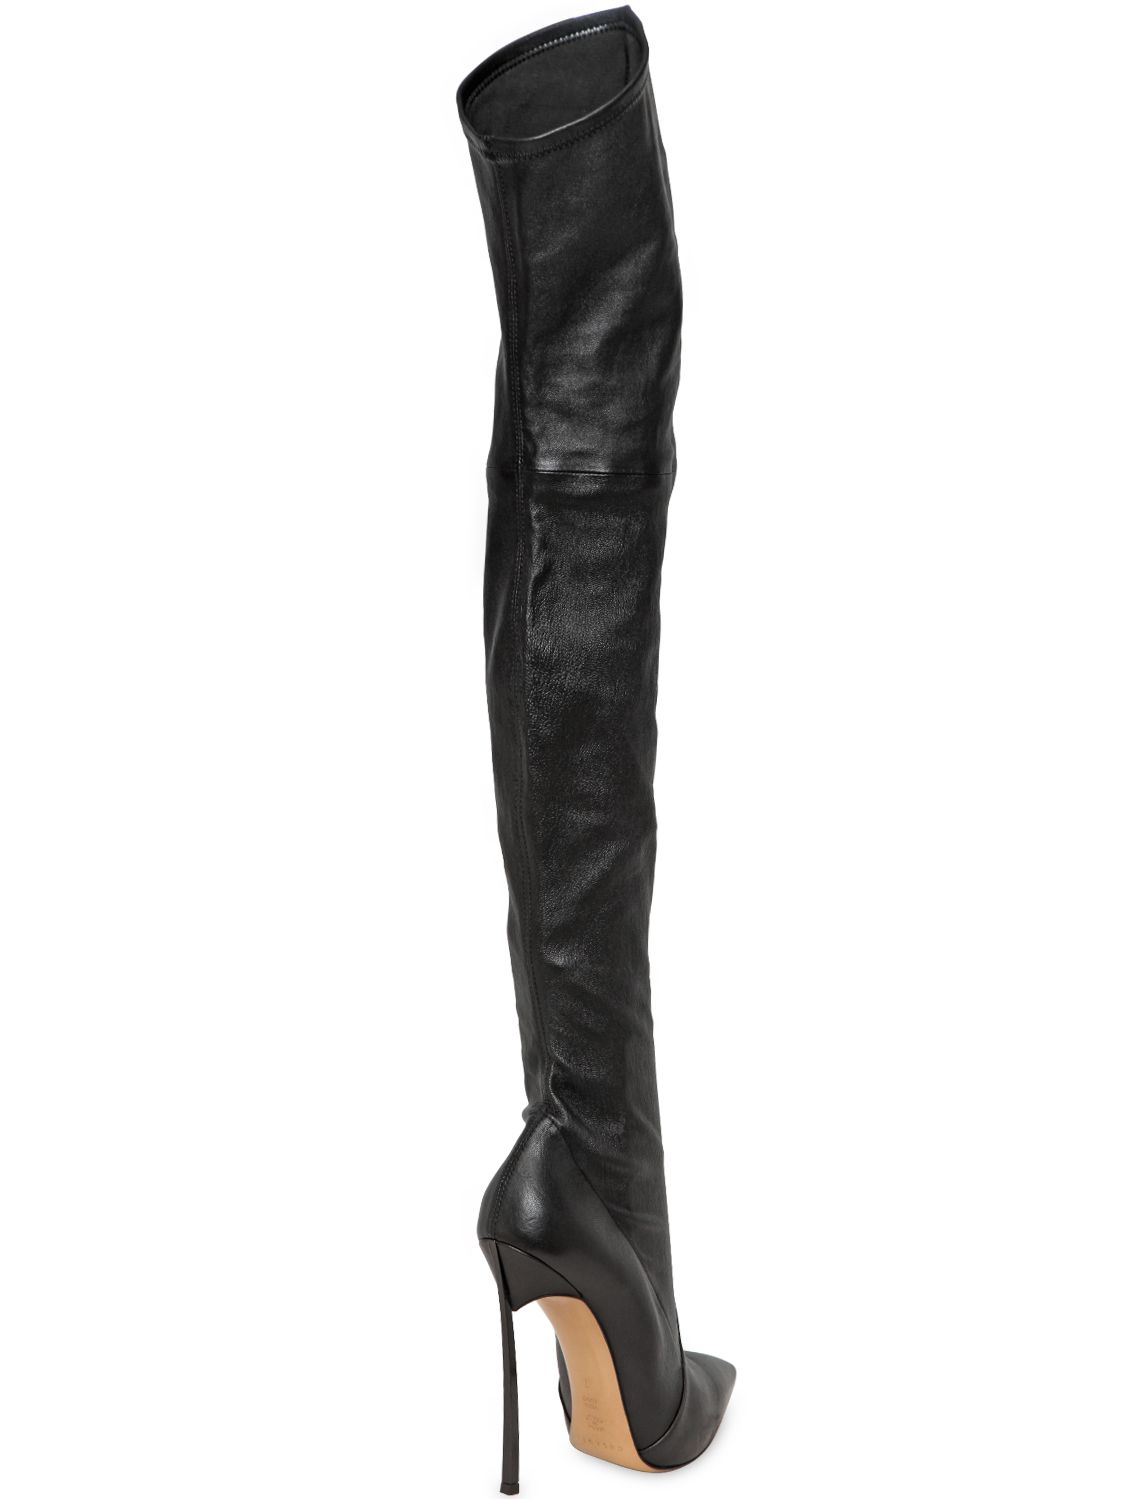 Discount Best Wholesale Casadei Leather Boots Popular And Cheap jipvkHt